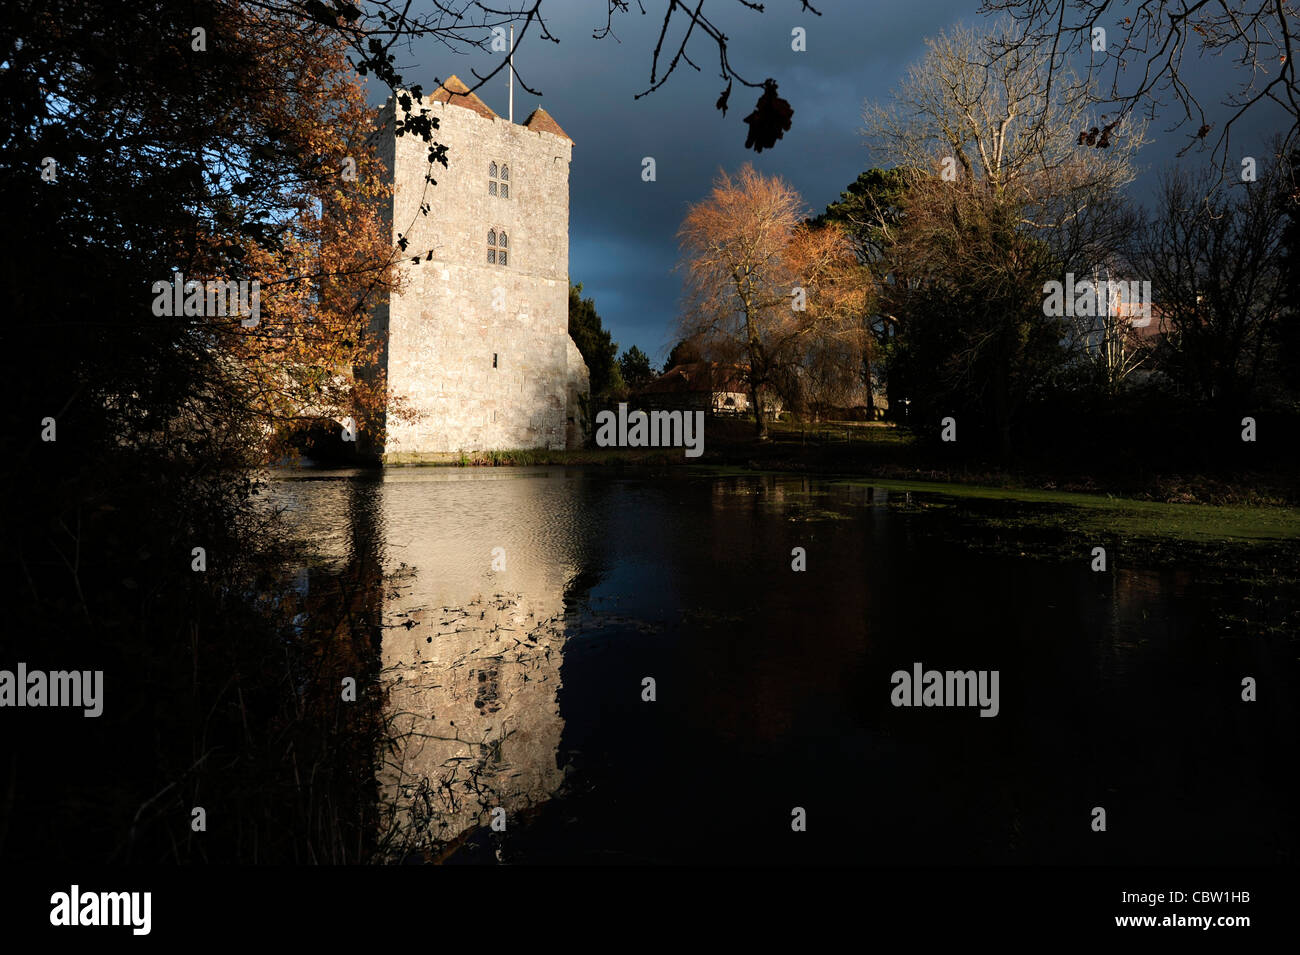 A shaft of golden sunlight illuminates the gate house tower at Michelham Priory, East Sussex, on a stormy day. - Stock Image